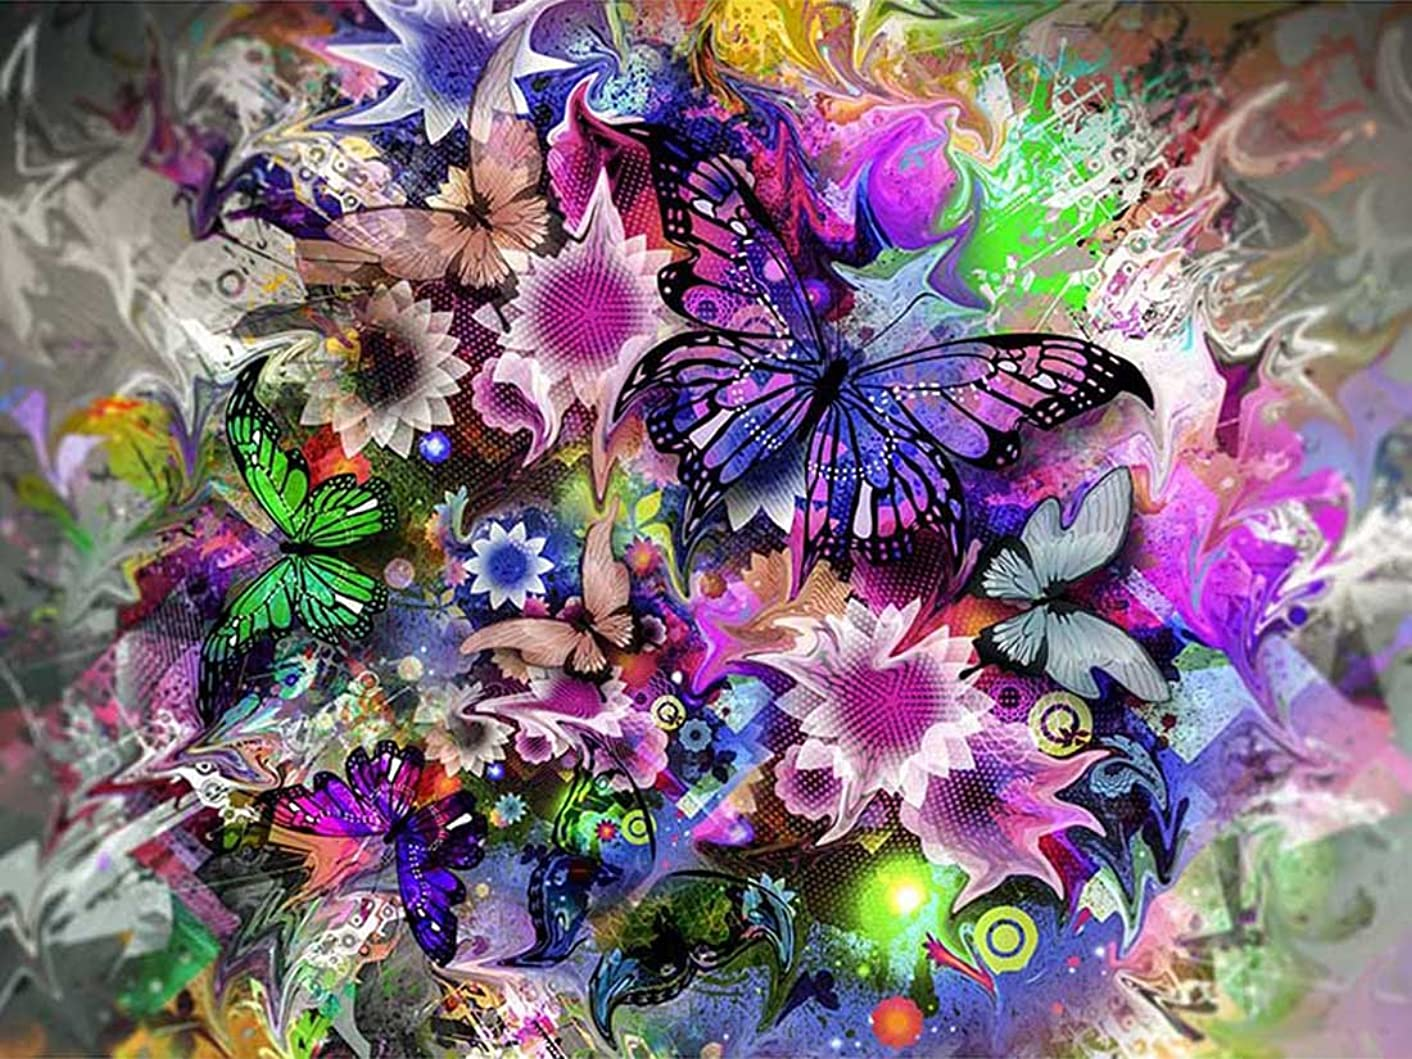 21secret 5D Diamond Diy Painting Full Drill Handmade Colorful Butterflies in Love with Flowers Cross Stitch Home Decor Embroidery Kit